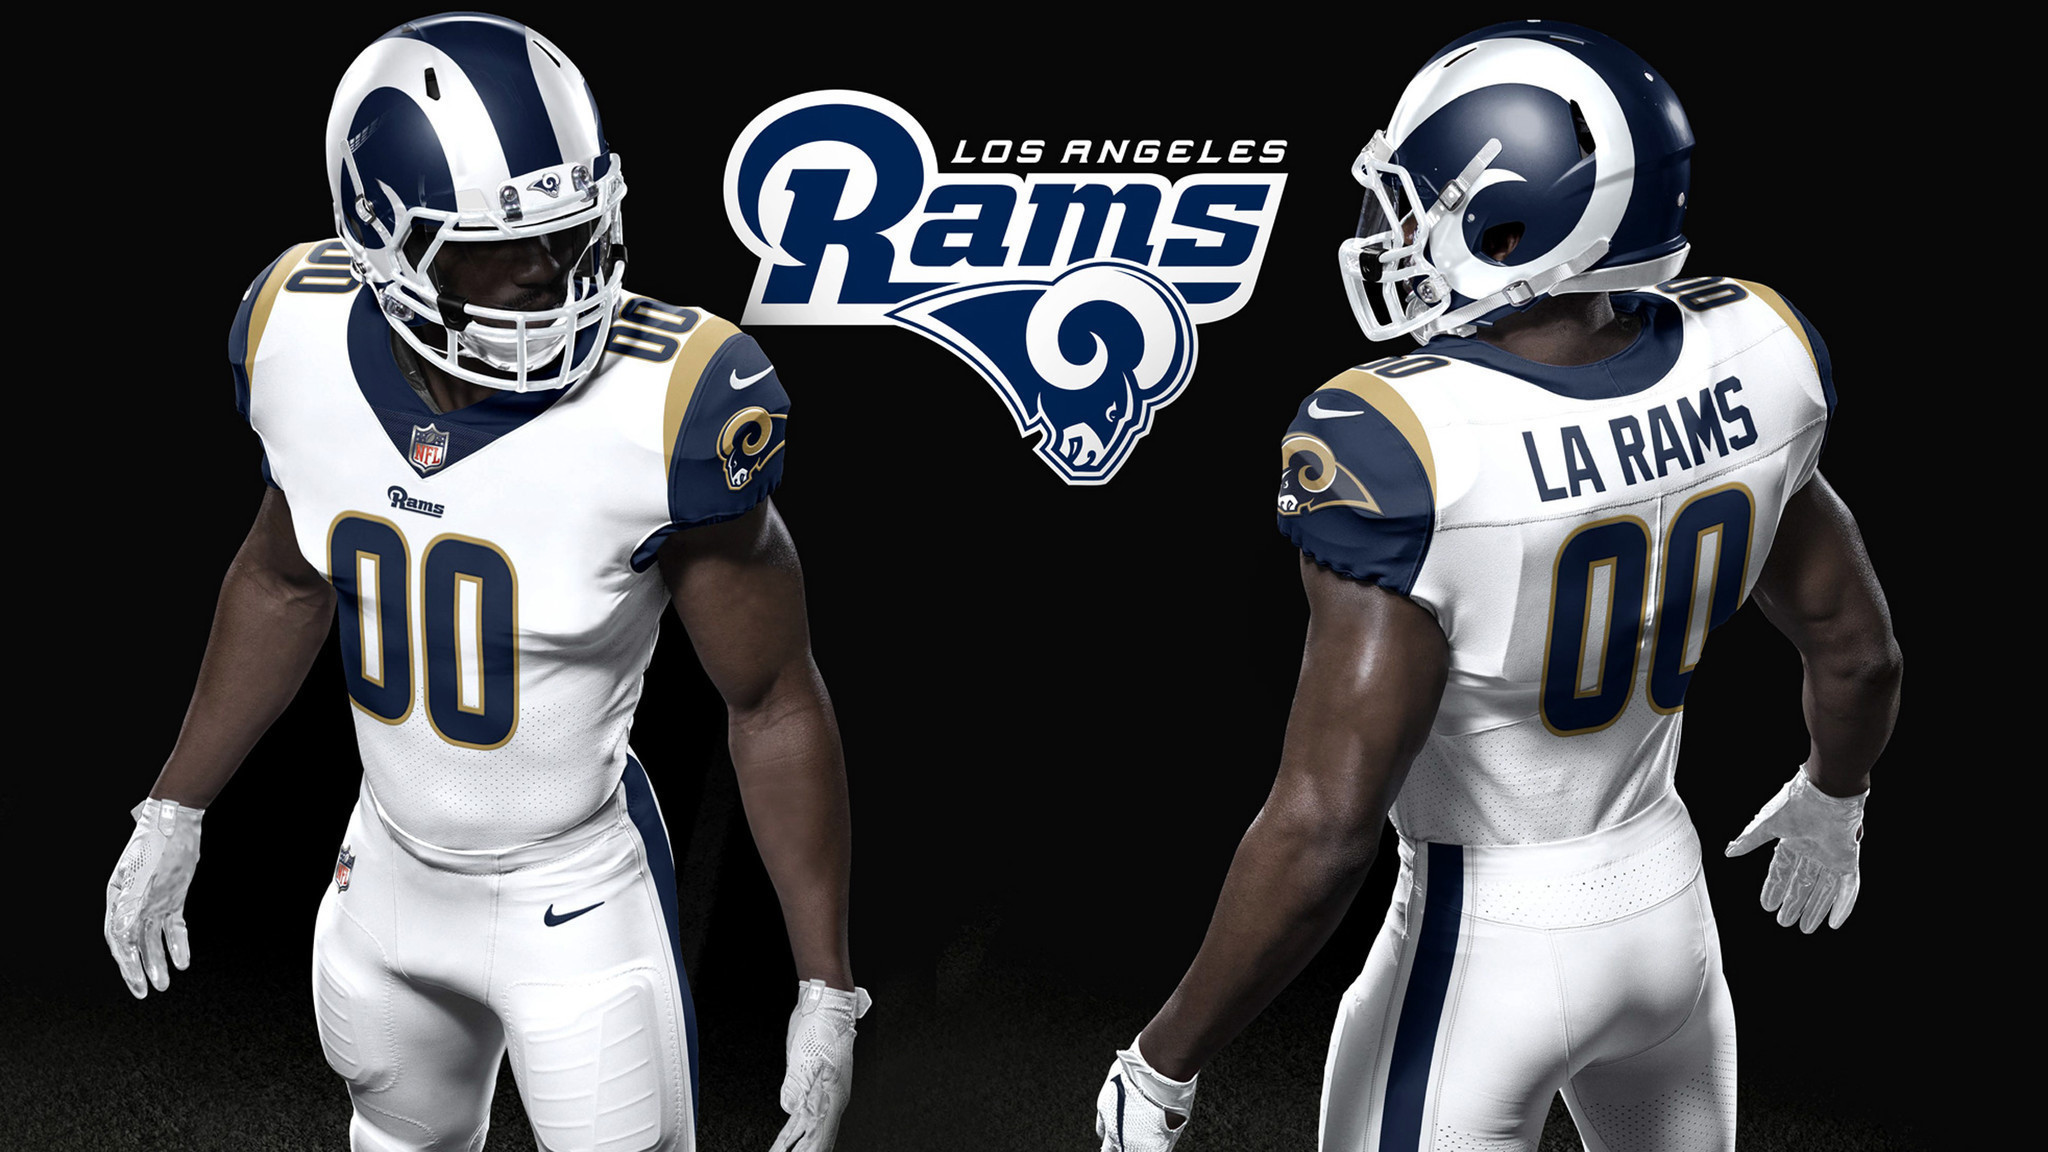 Los angeles rams wallpapers 72 images 1125x2001 los angeles rams miami dolphins minnesota vikings new england patriots new orleans saints voltagebd Images